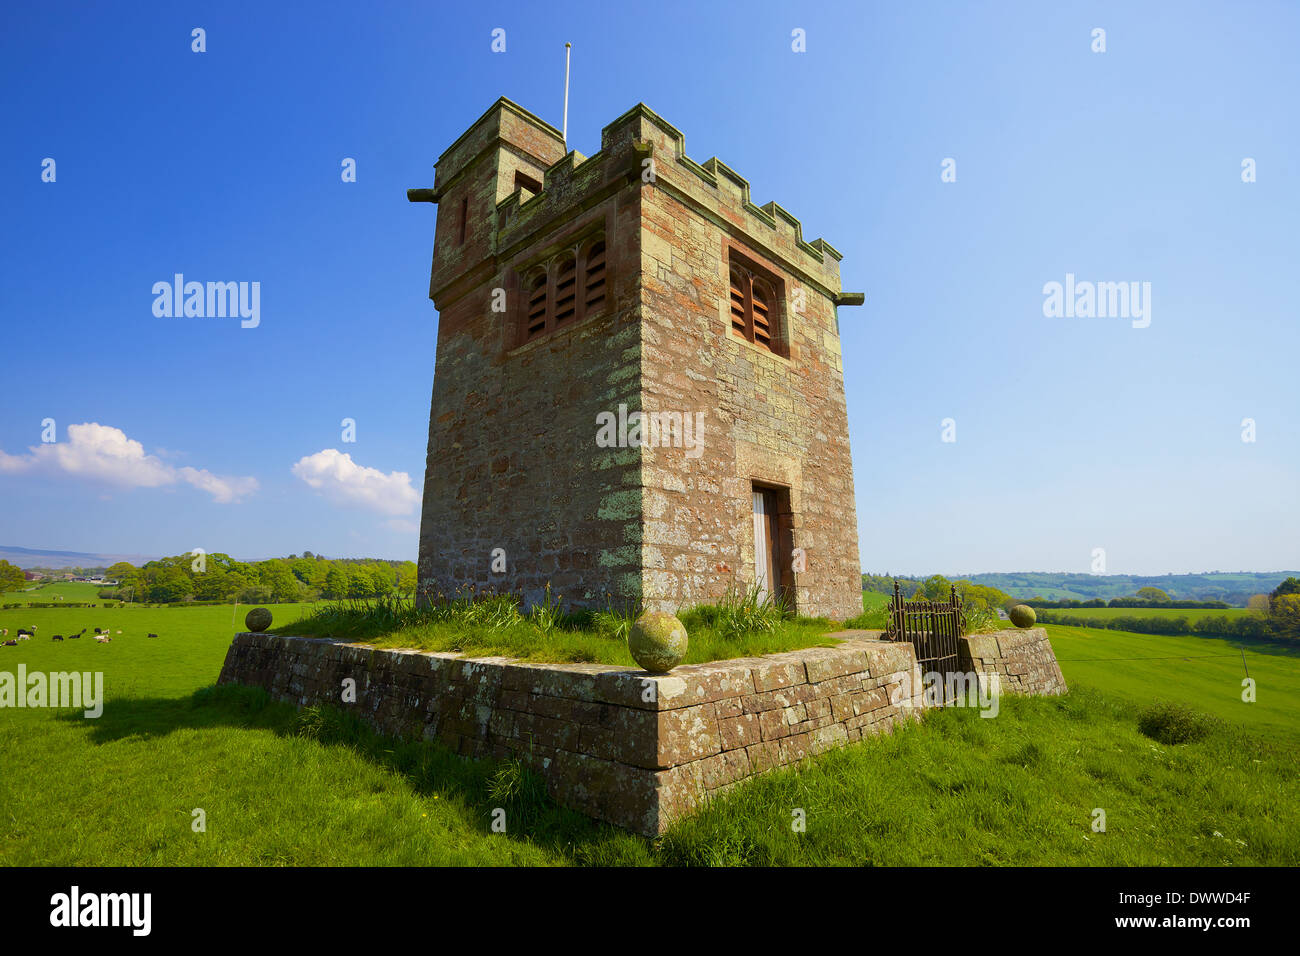 St Oswald's Church Belltower, Kirkoswald Eden Valley, Cumbria, England, United Kingdom - Stock Image